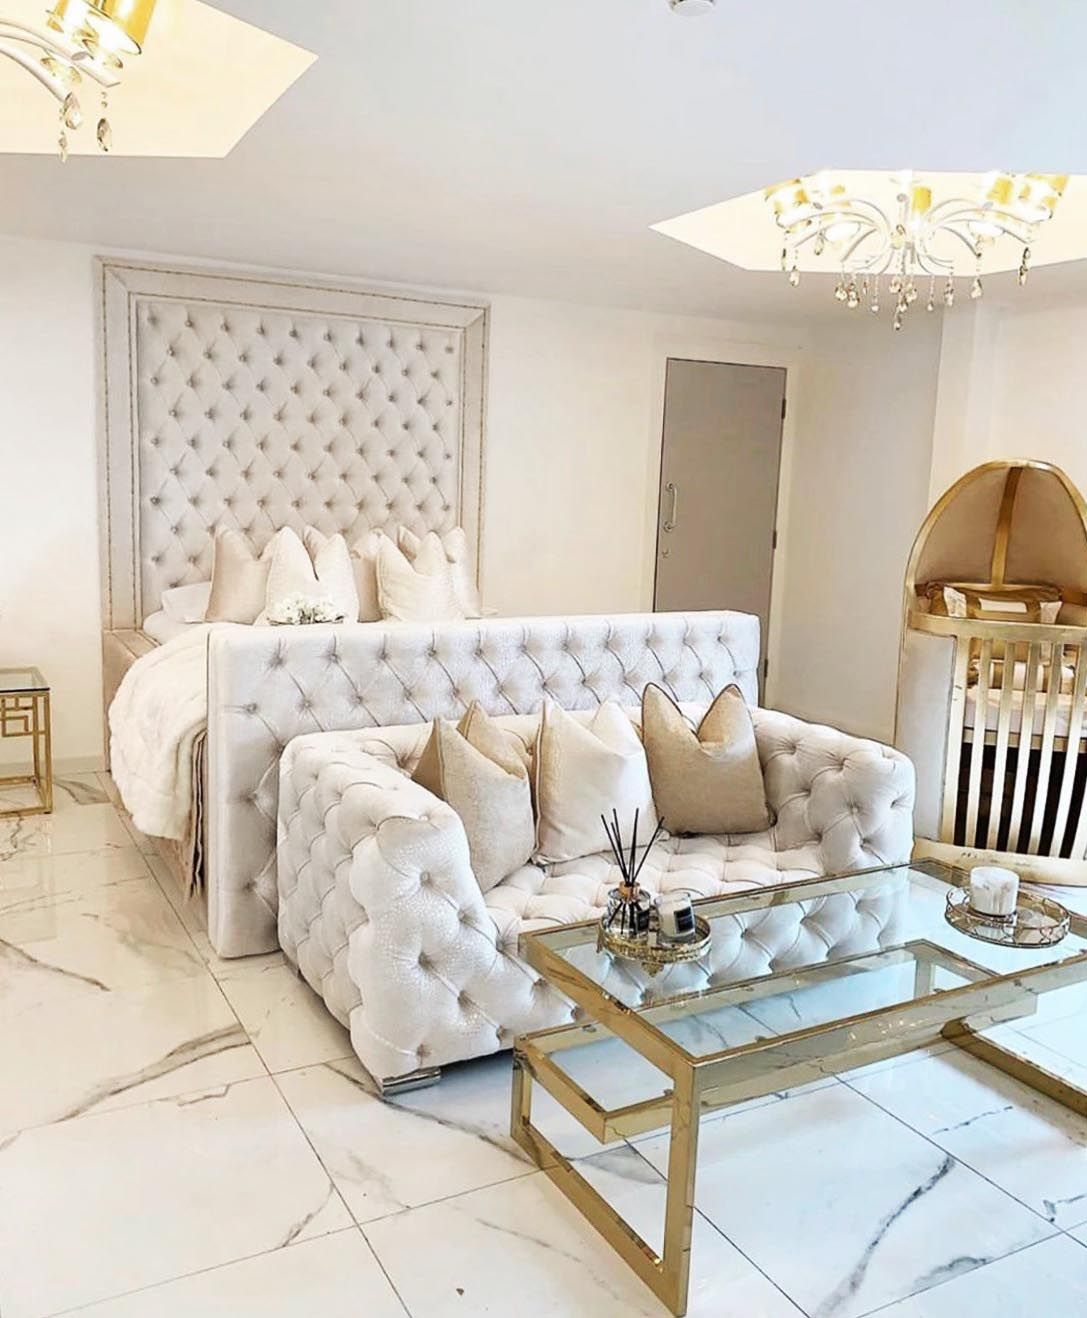 Master Bedroom Staging Ideas: Luxury White Bedroom Decor With Extra Tall Headboard